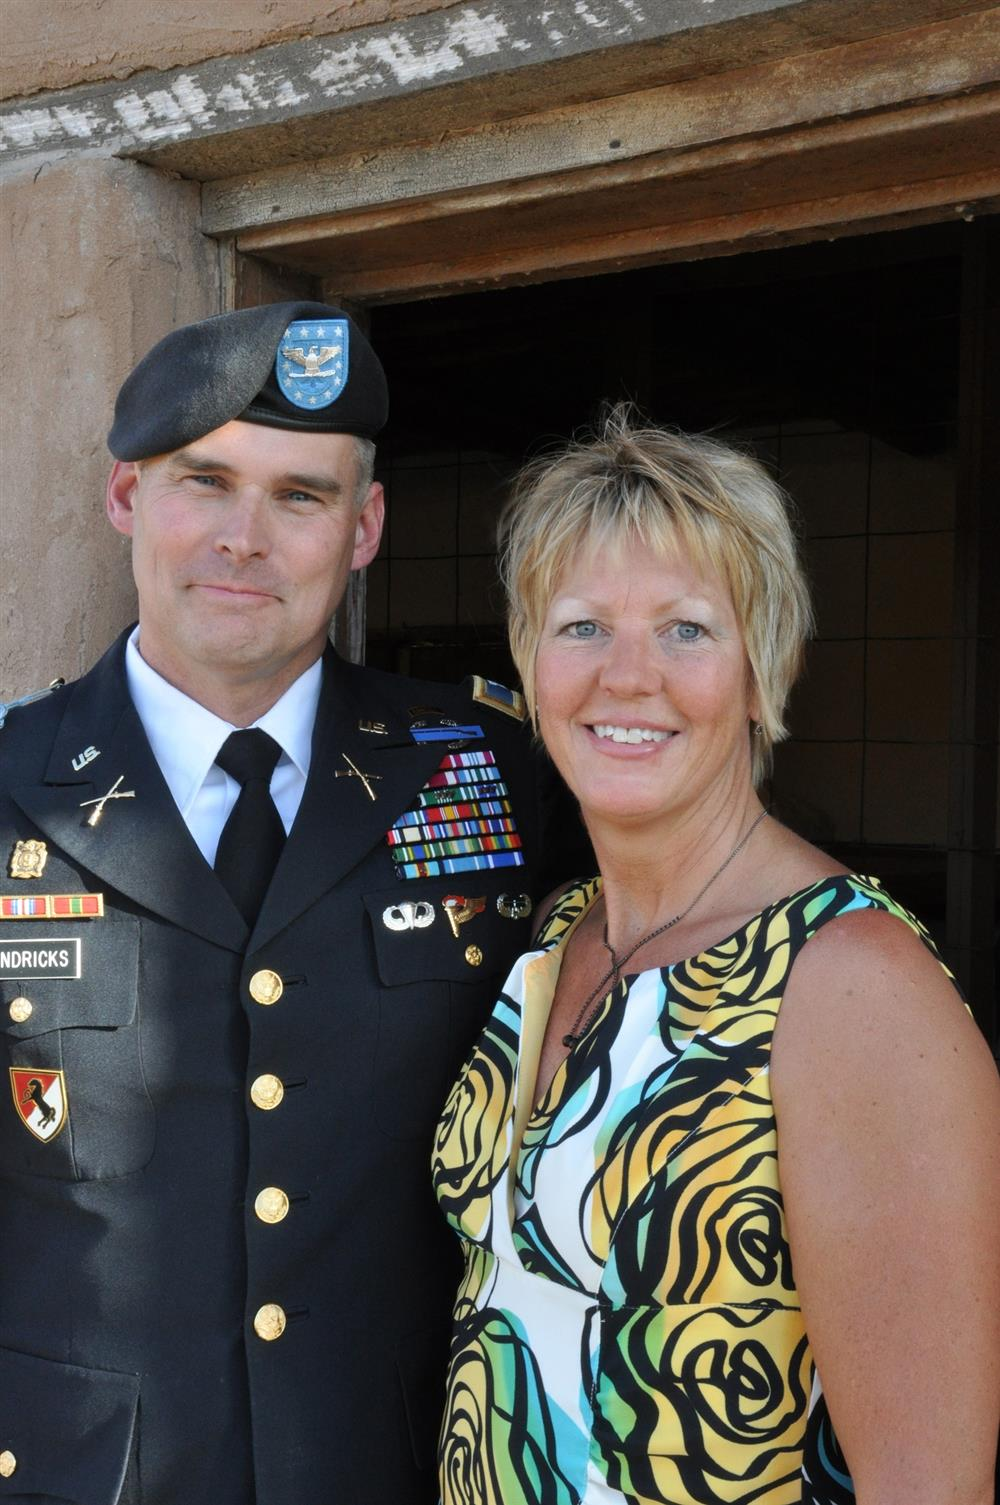 Caregiver Story A Military Man Learns The Value of A Safety Net